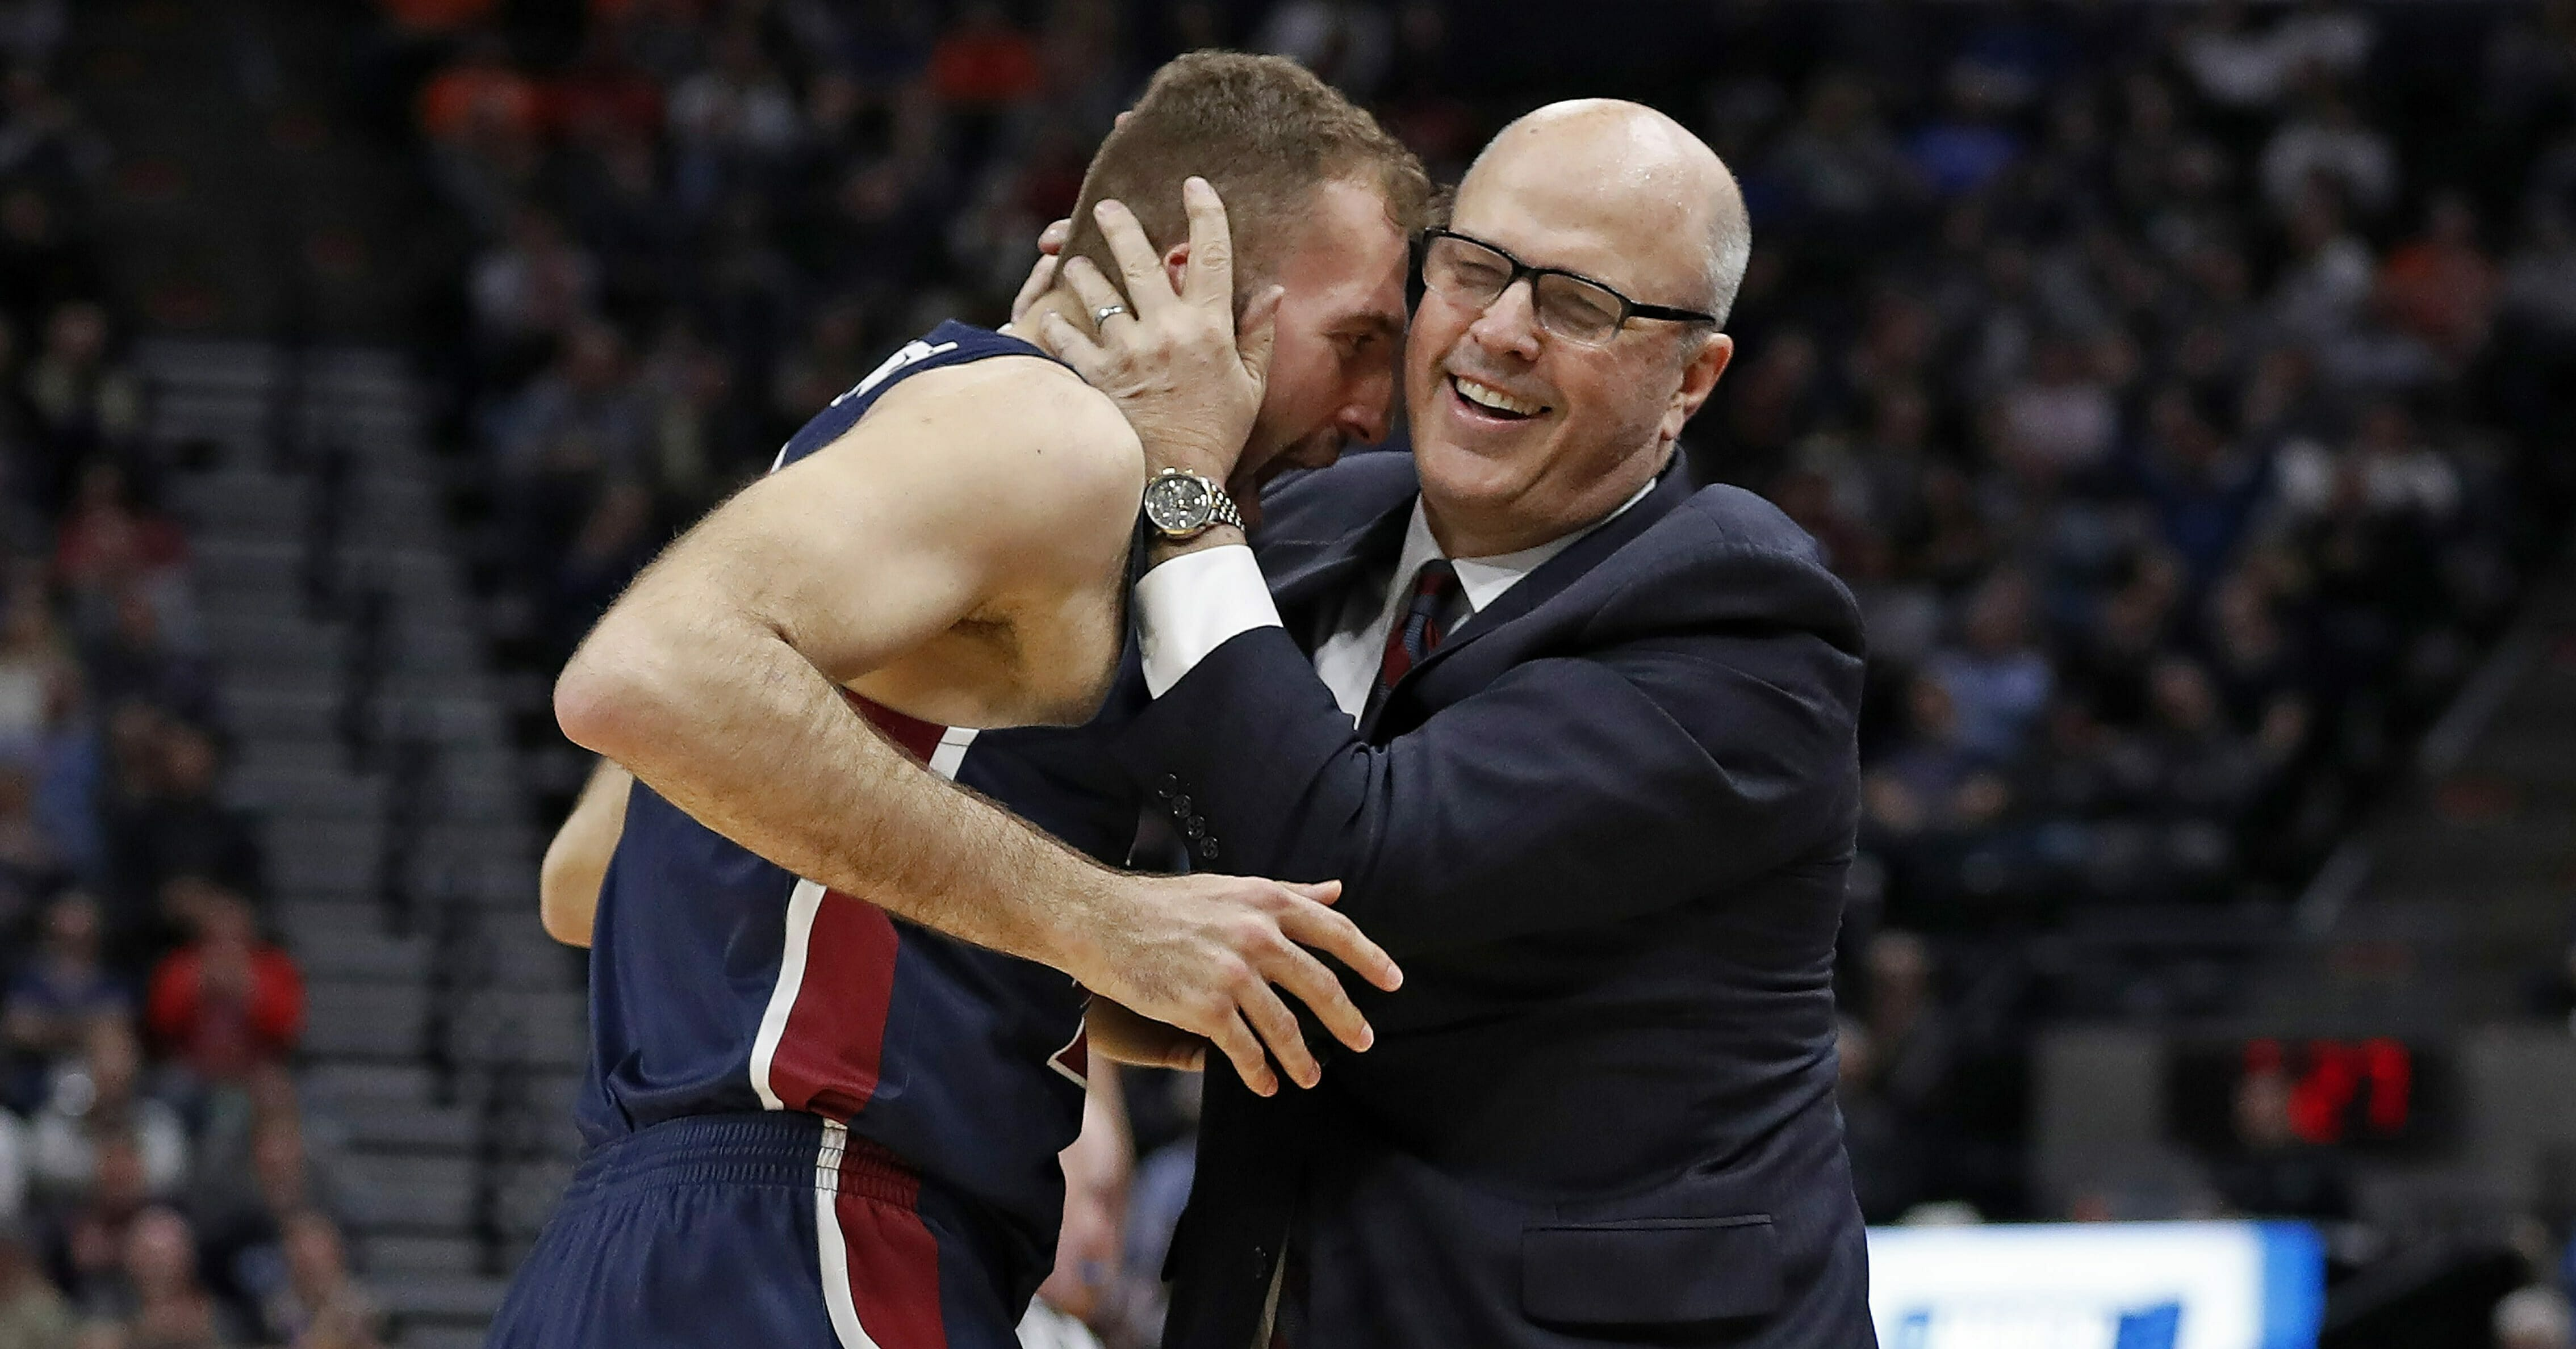 Fairleigh Dickinson forward Nadi Beciri, left, is embraced by coach Greg Herenda after a second-half shot against Gonzaga in the NCAA Tournament on March 21, 2019, in Salt Lake City.